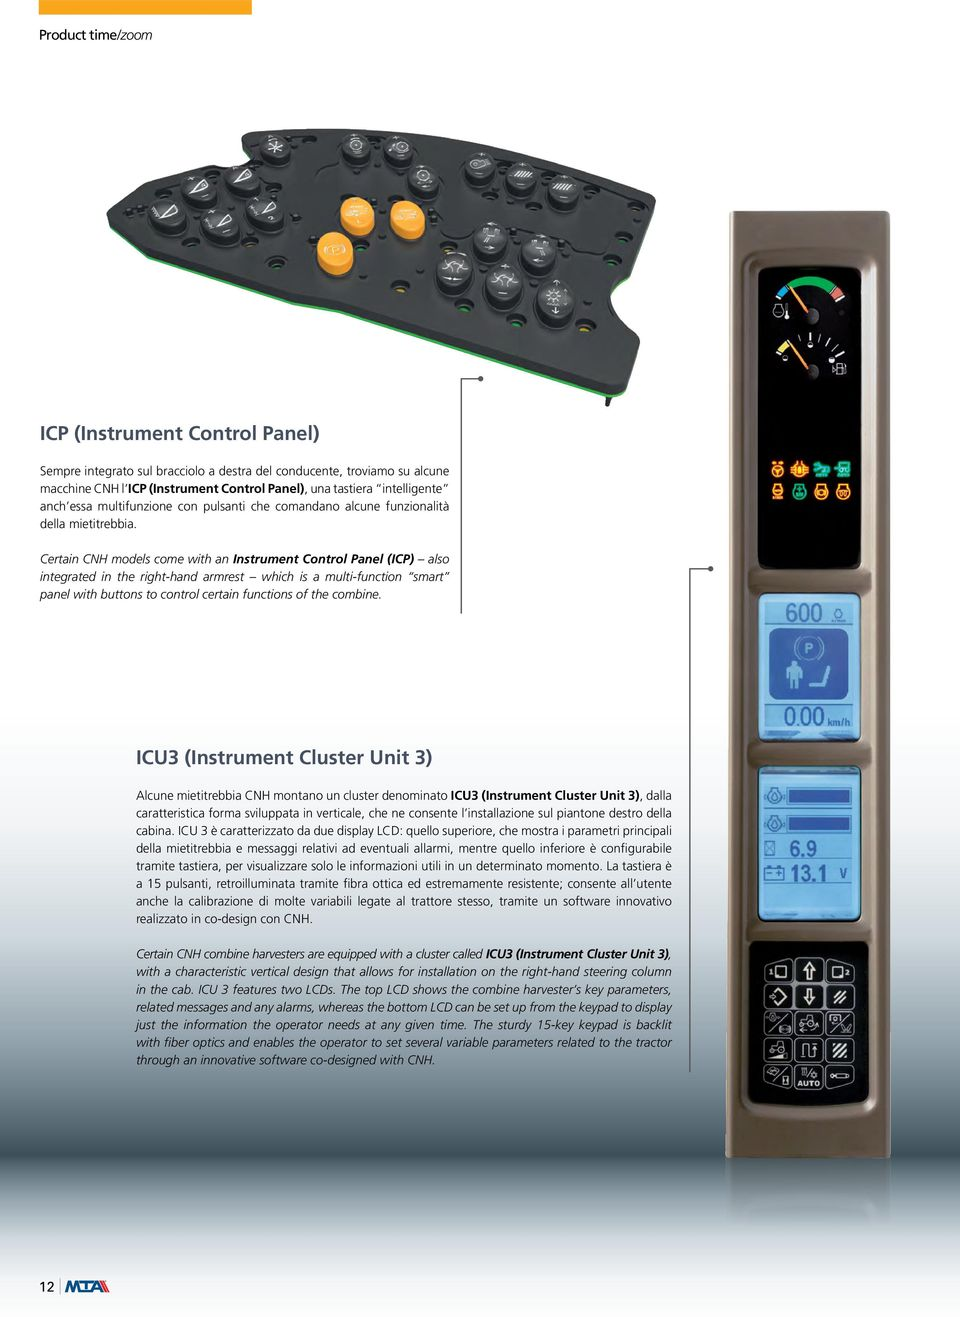 Certain CNH models come with an Instrument Control Panel (ICP) also integrated in the right-hand armrest which is a multi-function smart panel with buttons to control certain functions of the combine.